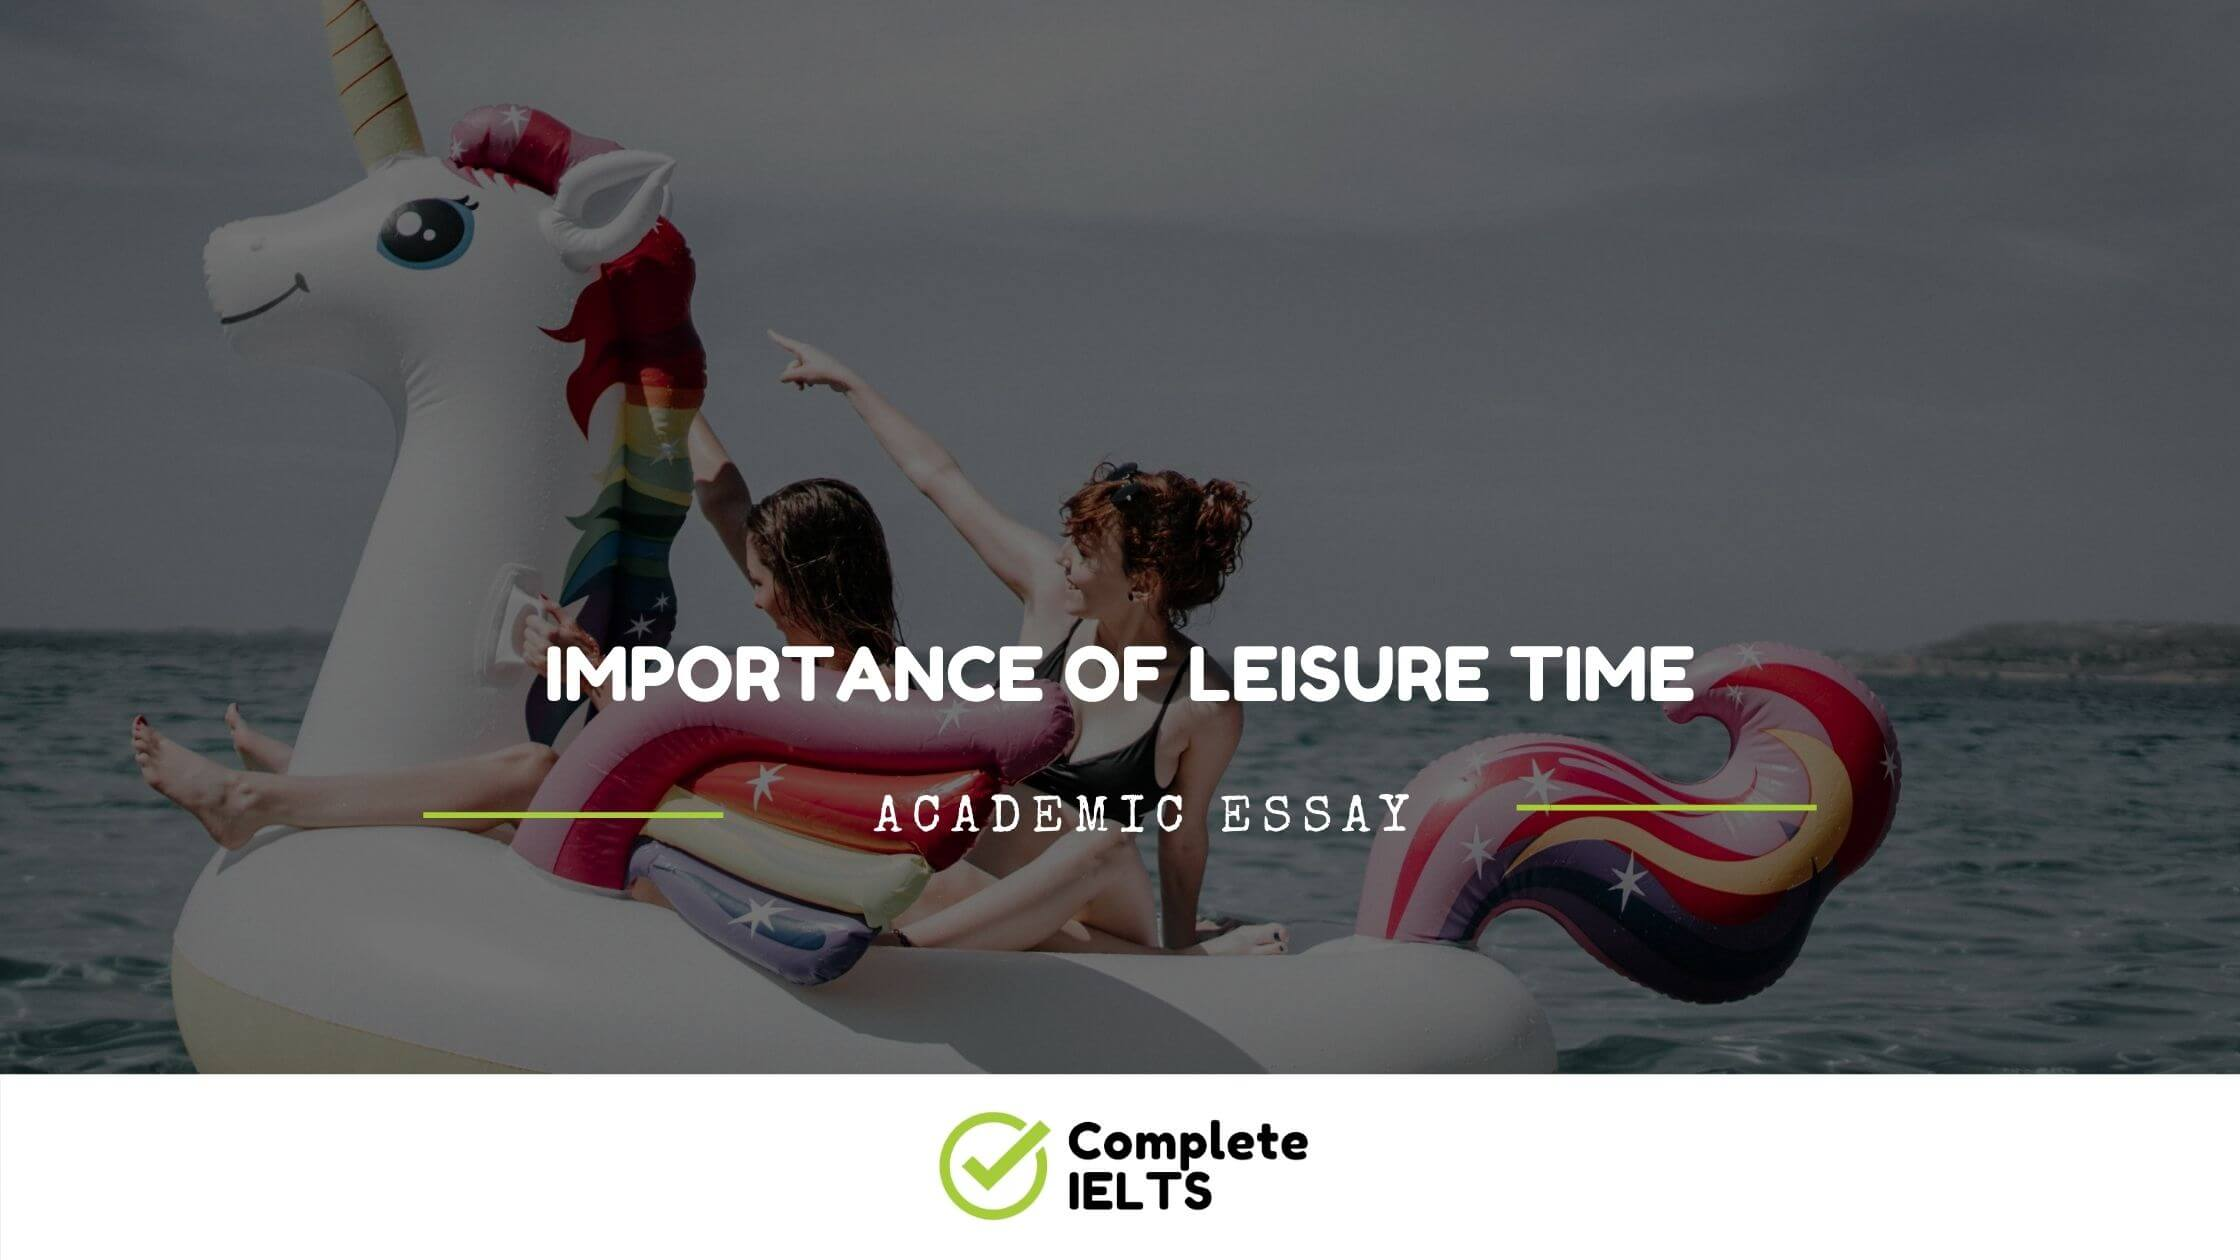 Essay on Importance Of Leisure Time